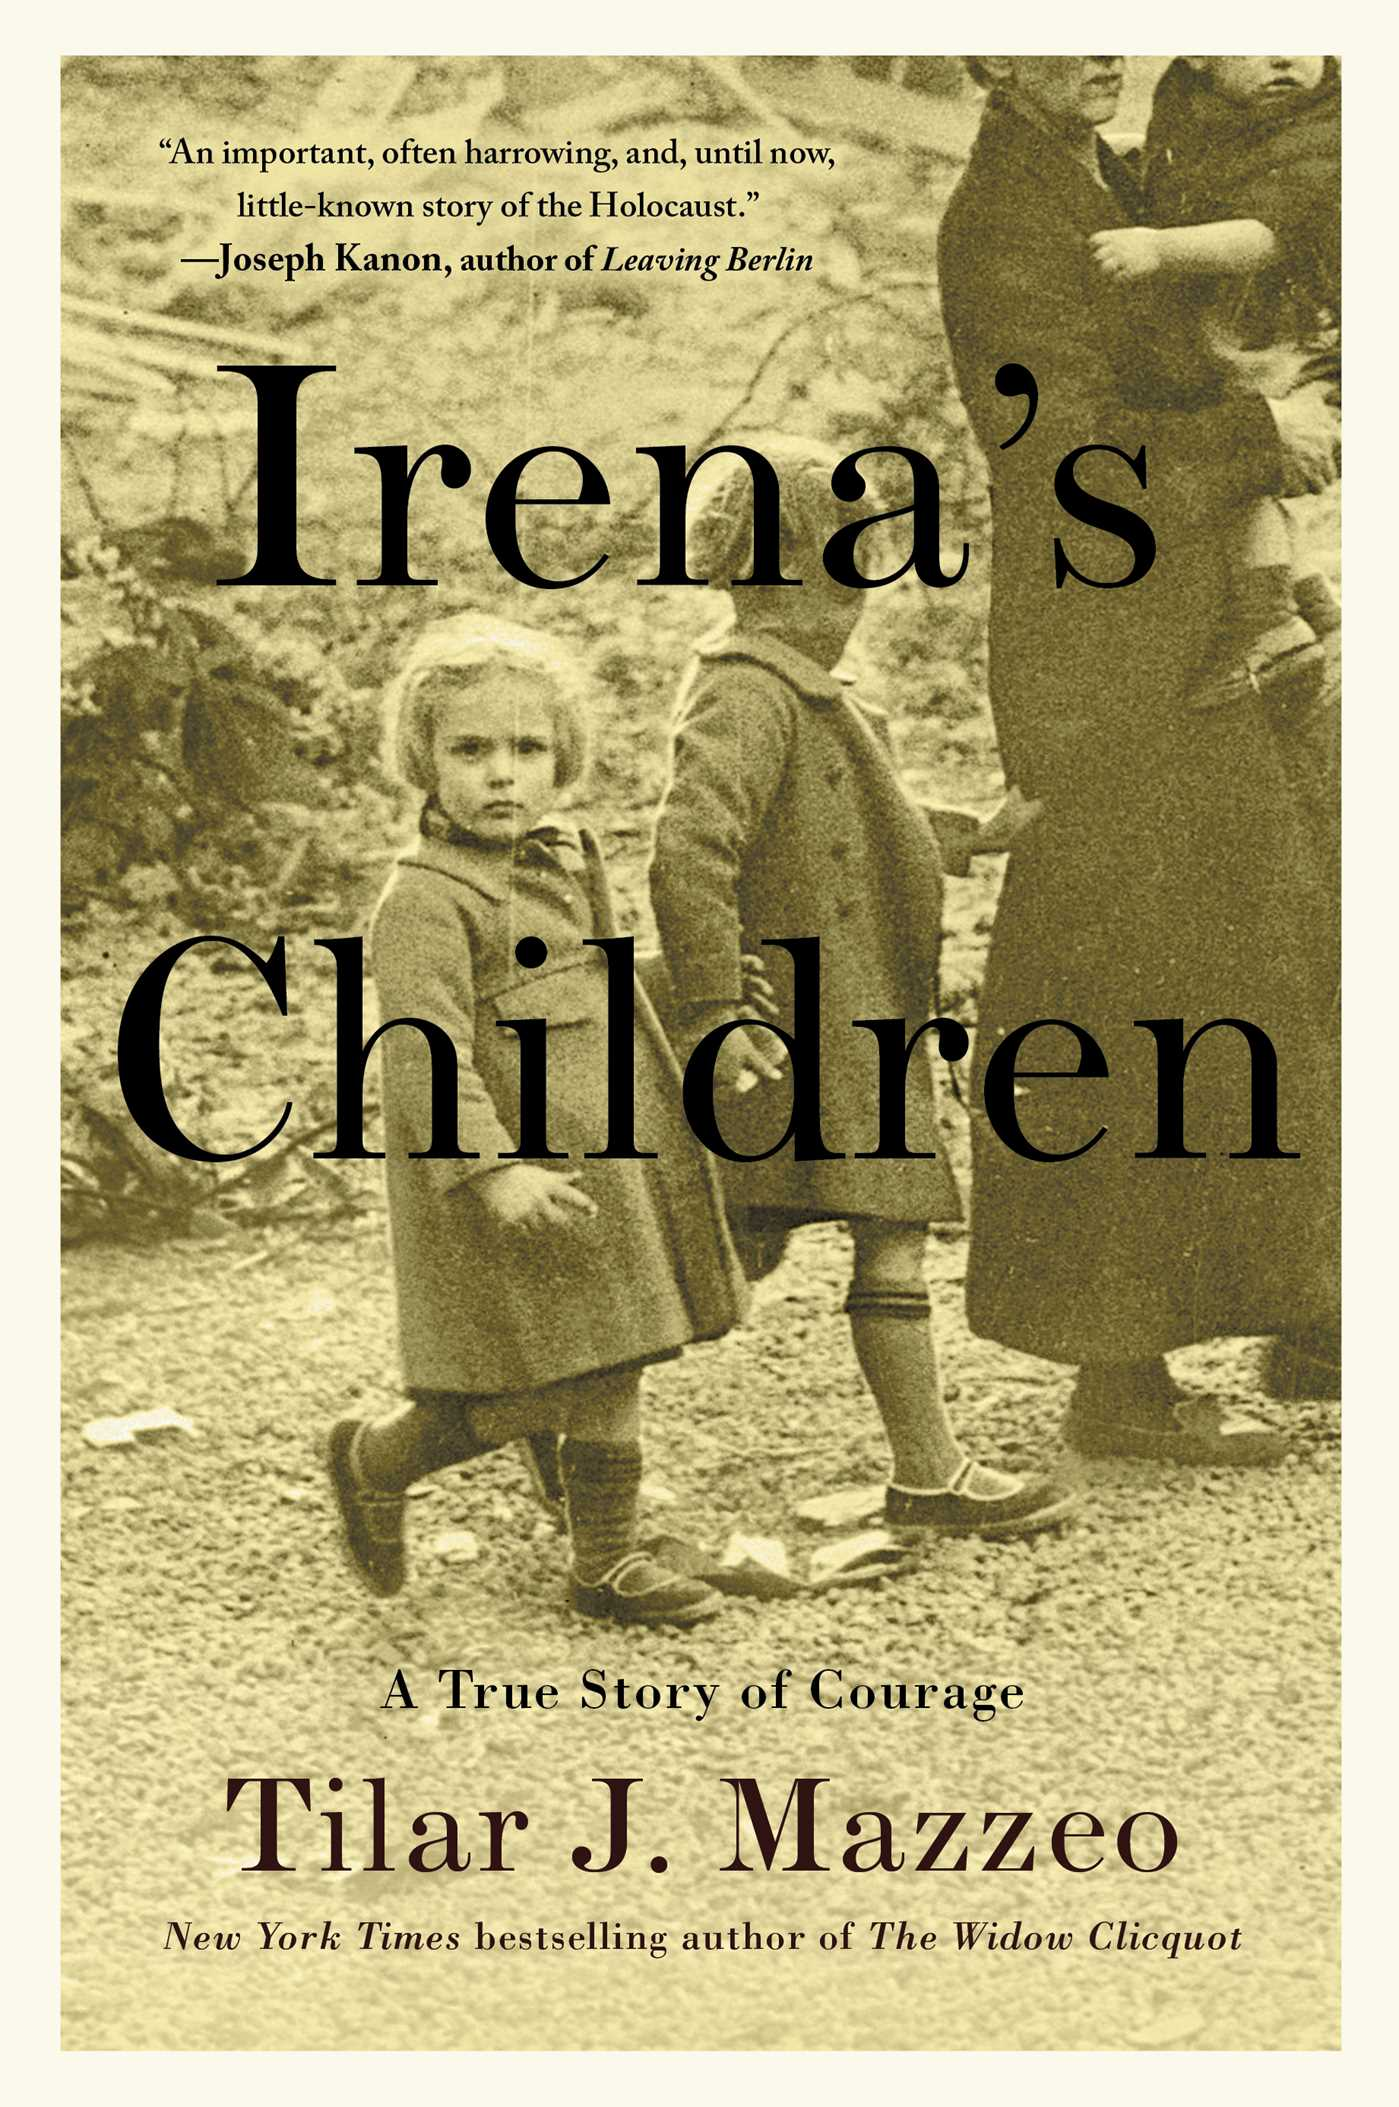 Irenas children 9781476778501 hr